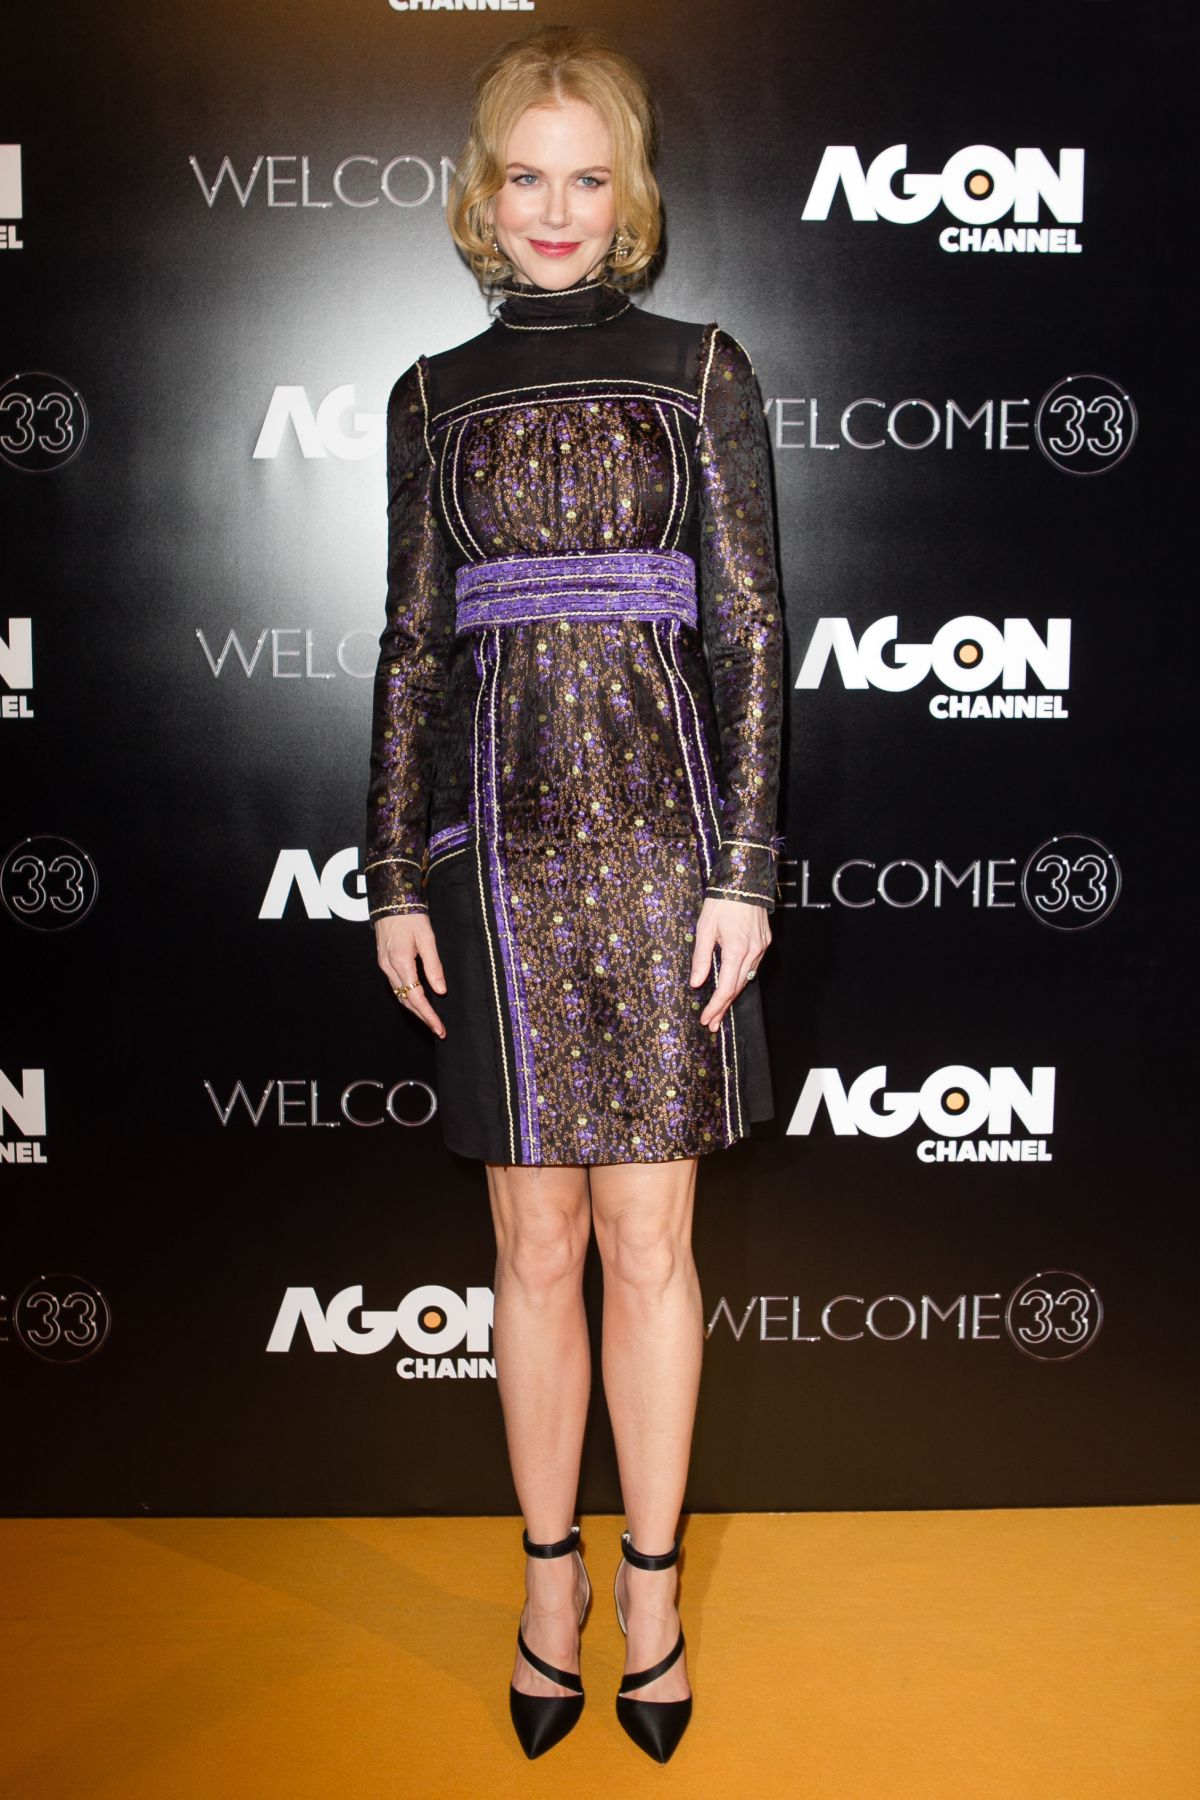 nicole-kidman-at-agon-channel-launch-party-in-milan_20